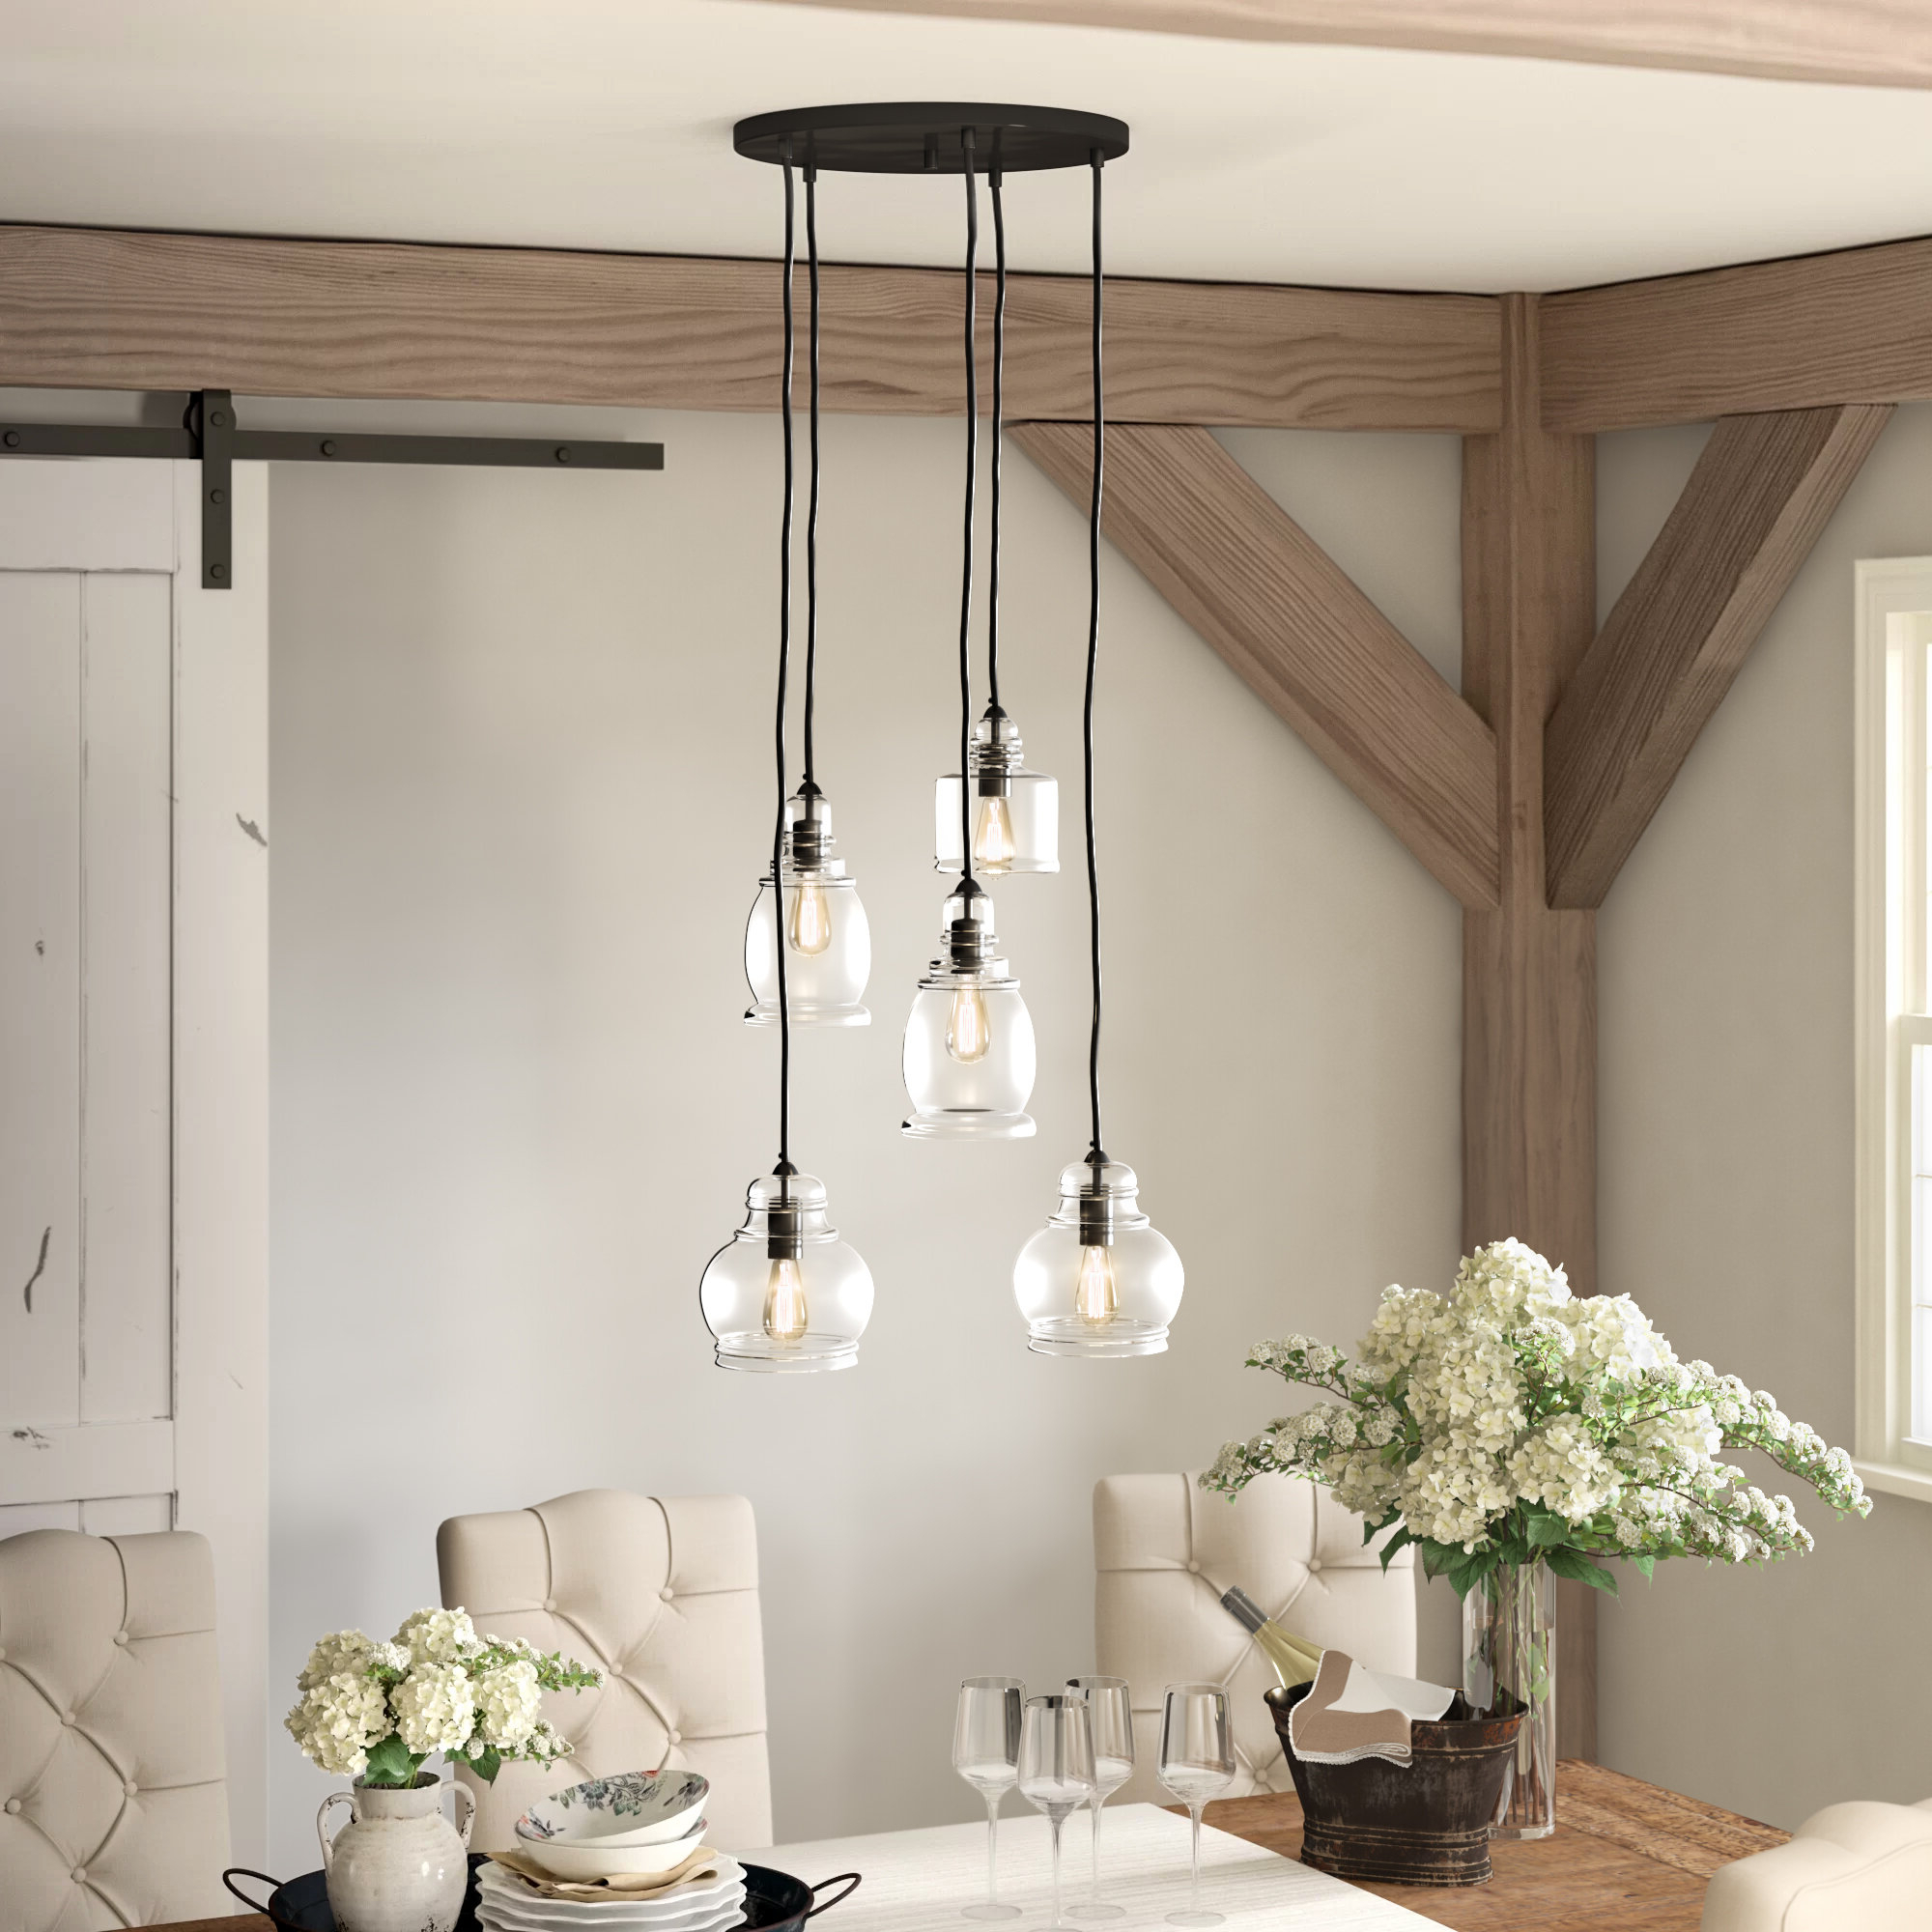 5 Light Cluster Bell Pendant With Regard To Best And Newest Pruett Cognac 3 Light Cluster Bell Pendants (View 2 of 20)